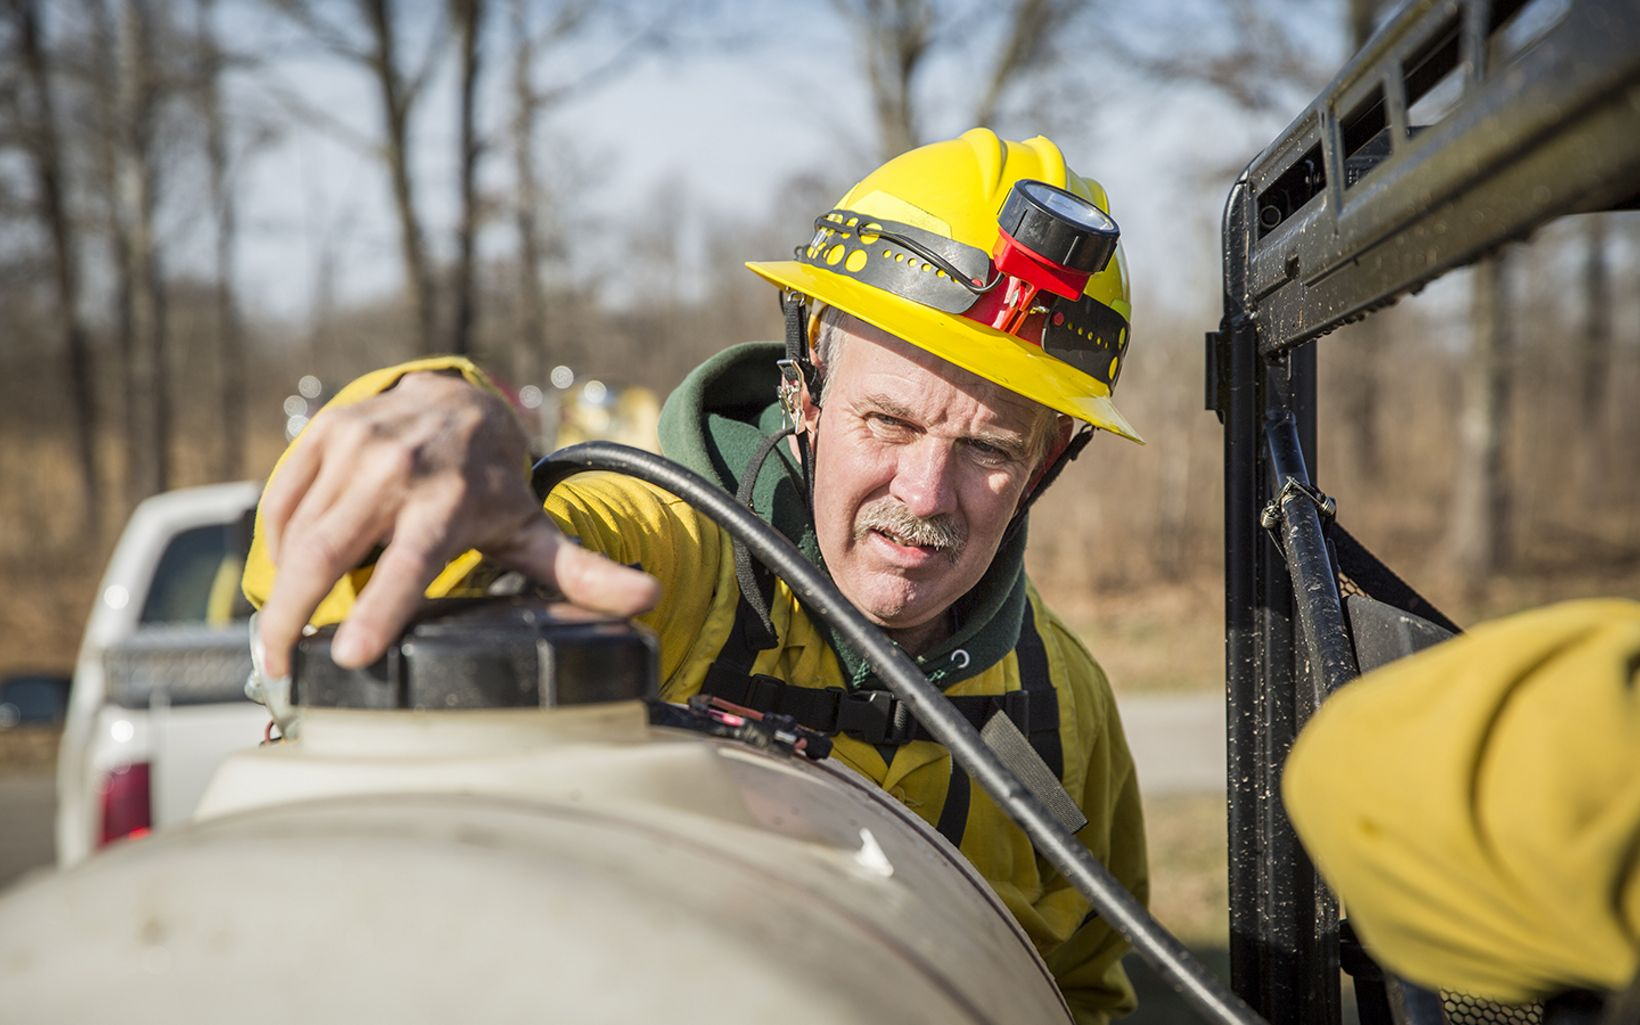 A fire worker checks a water tank before a prescribed fire.